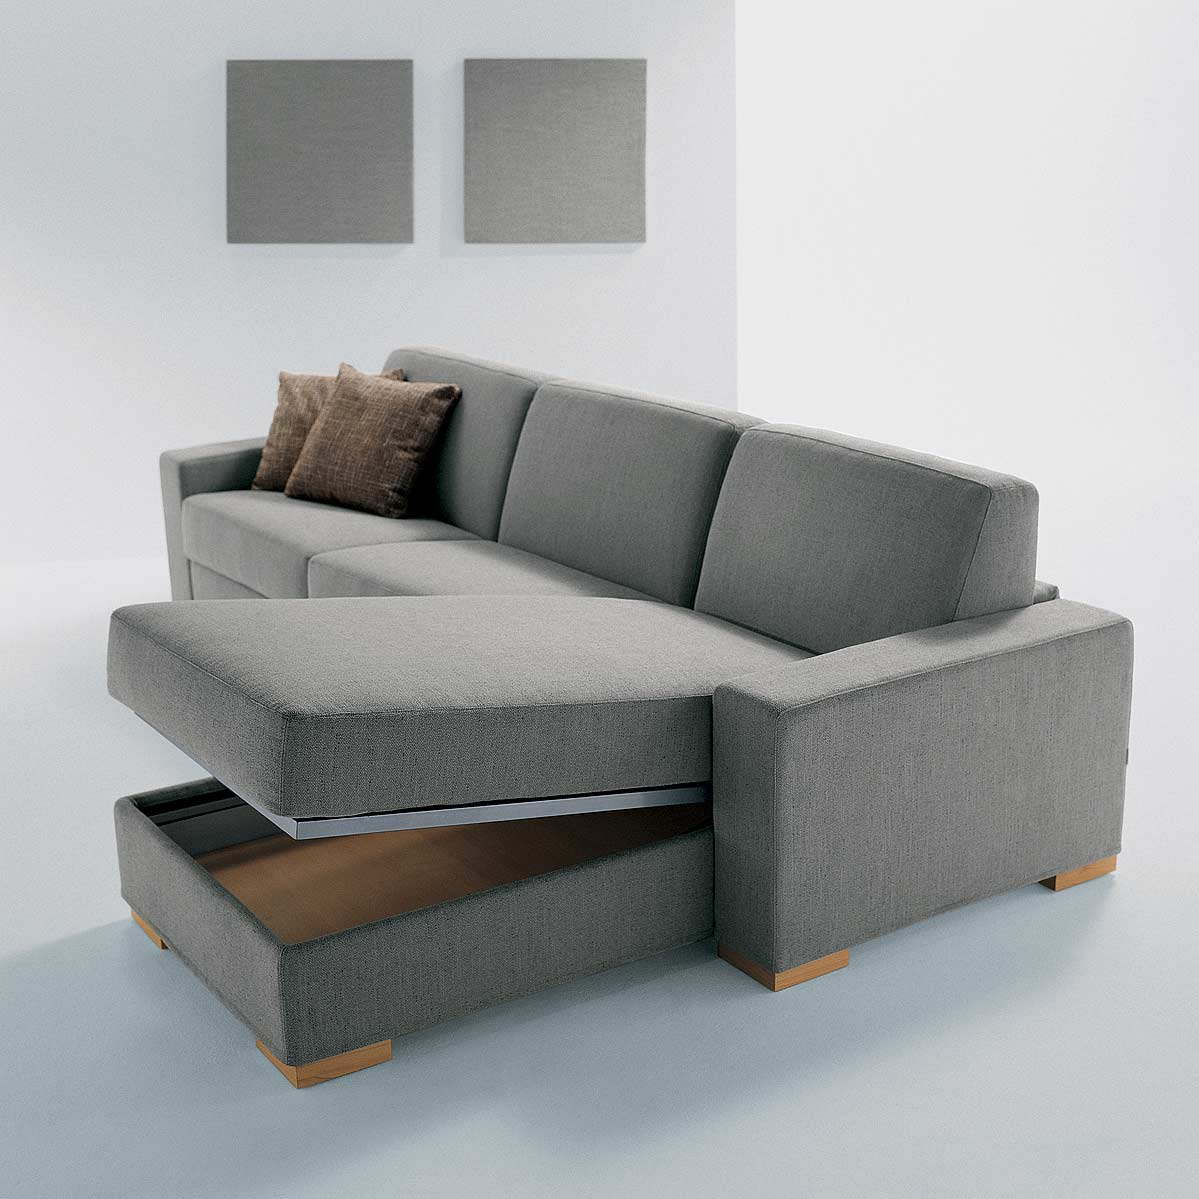 Convertible Sofa Bed on L Shaped Leather Chair